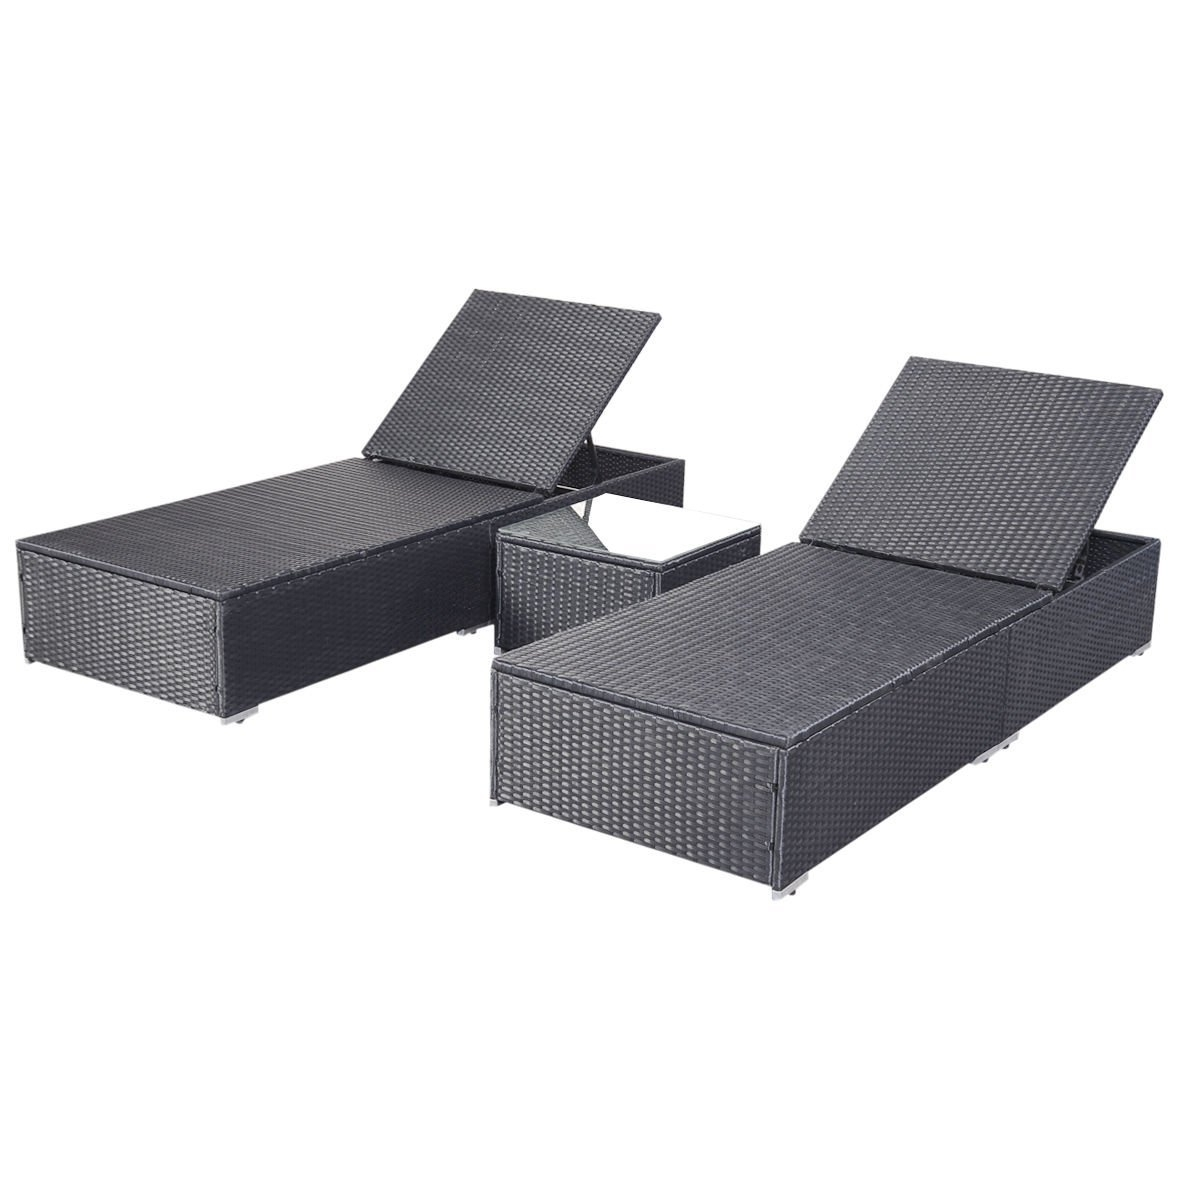 Black Outdoor Chaise Lounge Chairs Throughout Preferred Outdoor : Target Lounge Chairs Vinyl Strap Chaise Lounge Outdoor (View 4 of 15)